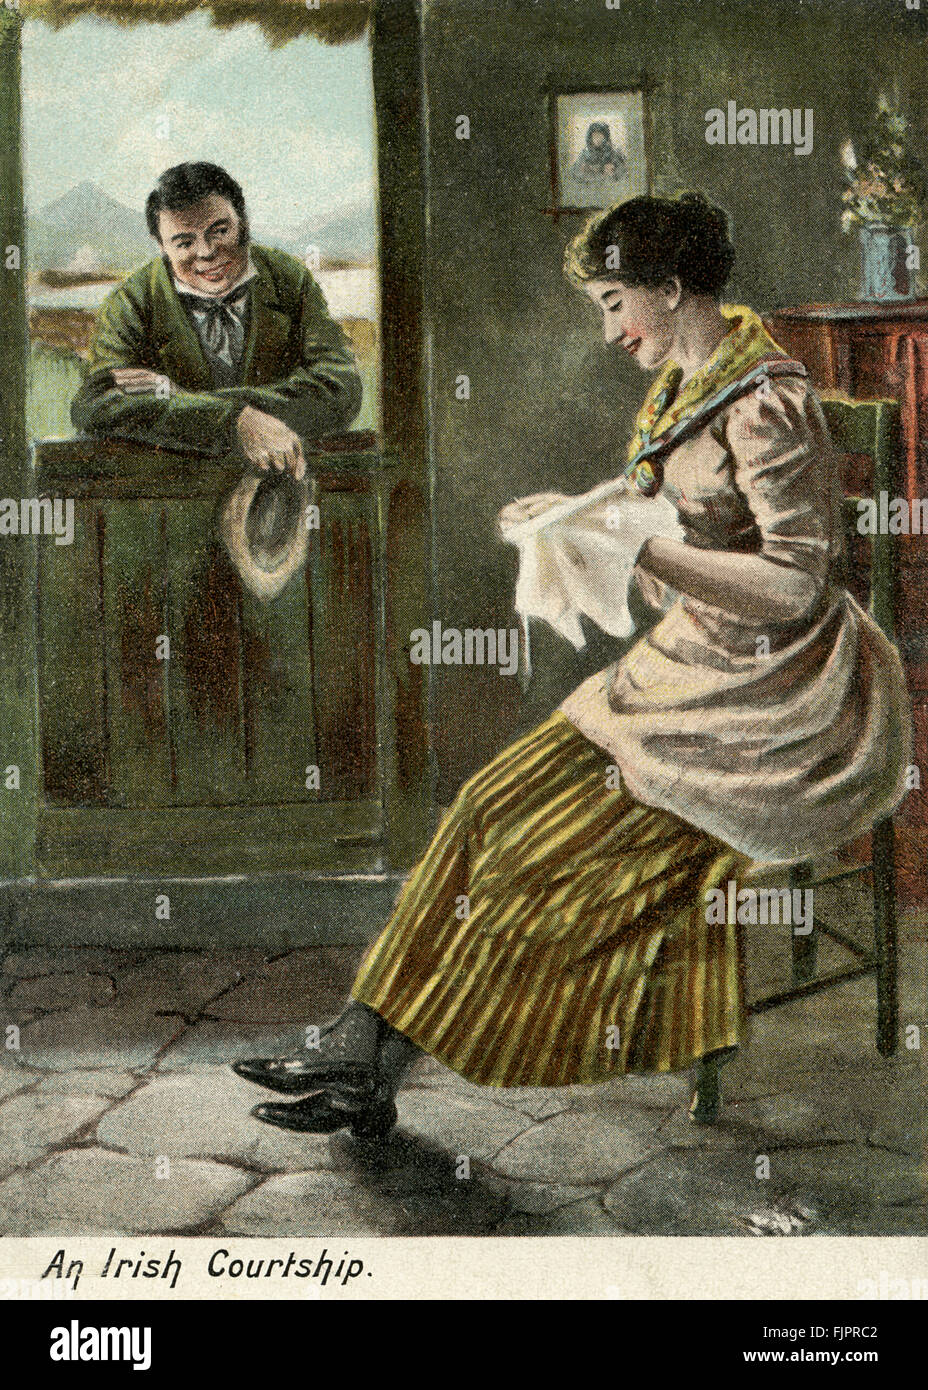 An Irish courtship - man talking to a woman in a cottage doing embroidery, postcard - Stock Image